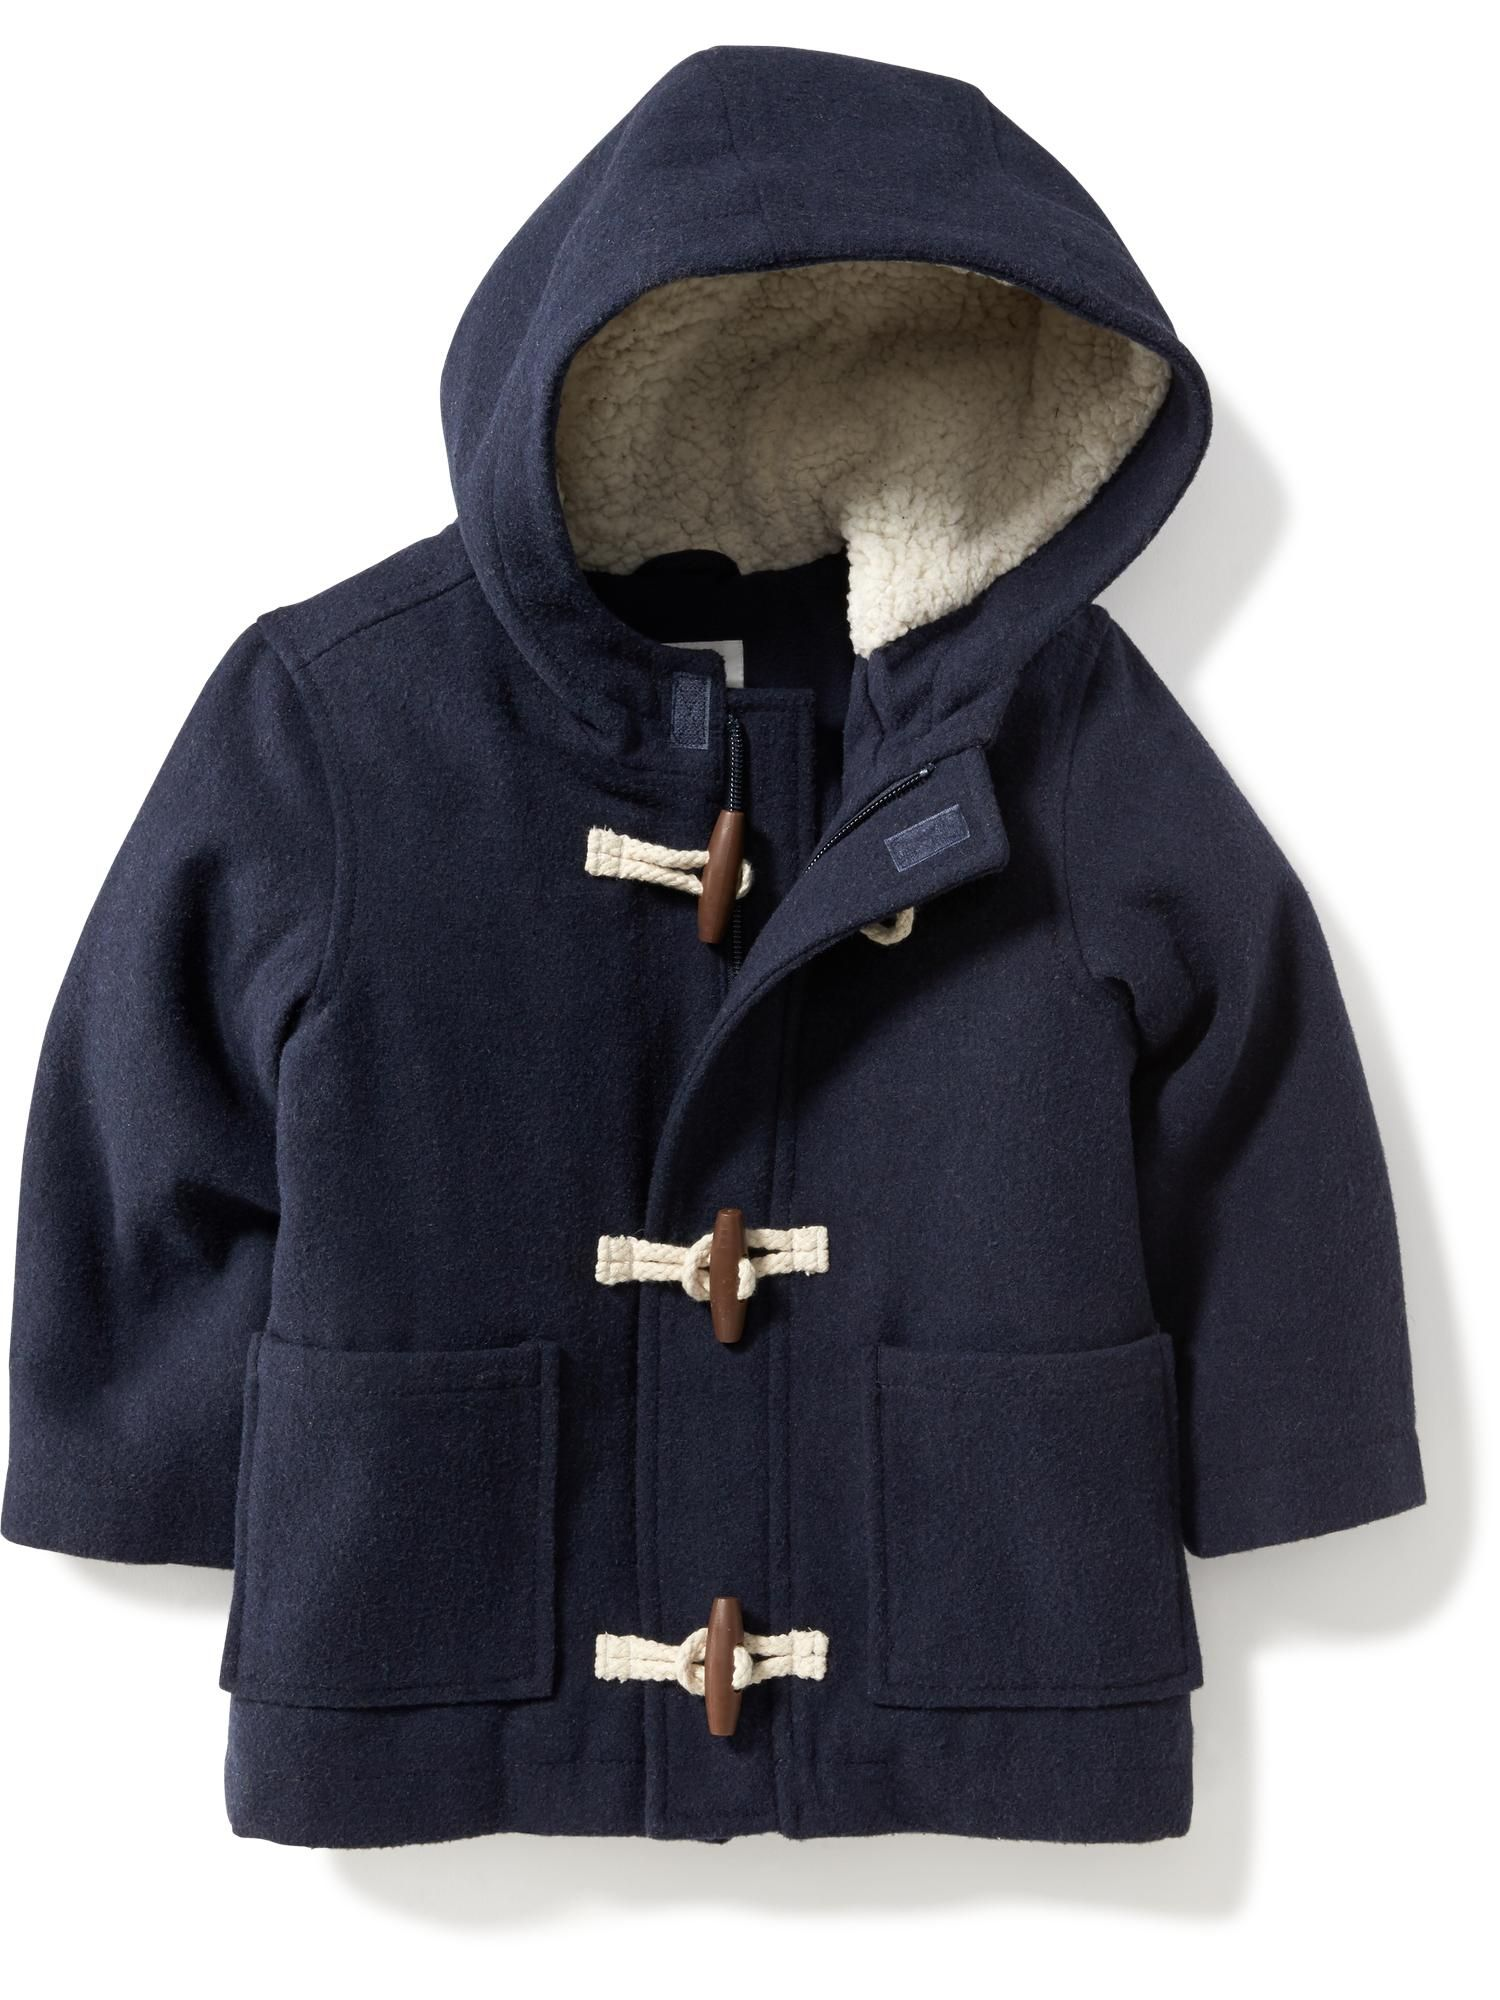 Wool Blend Toggle Coat For Toddler Baby Boy Coat Old Navy Baby Boy Boy Outerwear [ 2000 x 1500 Pixel ]